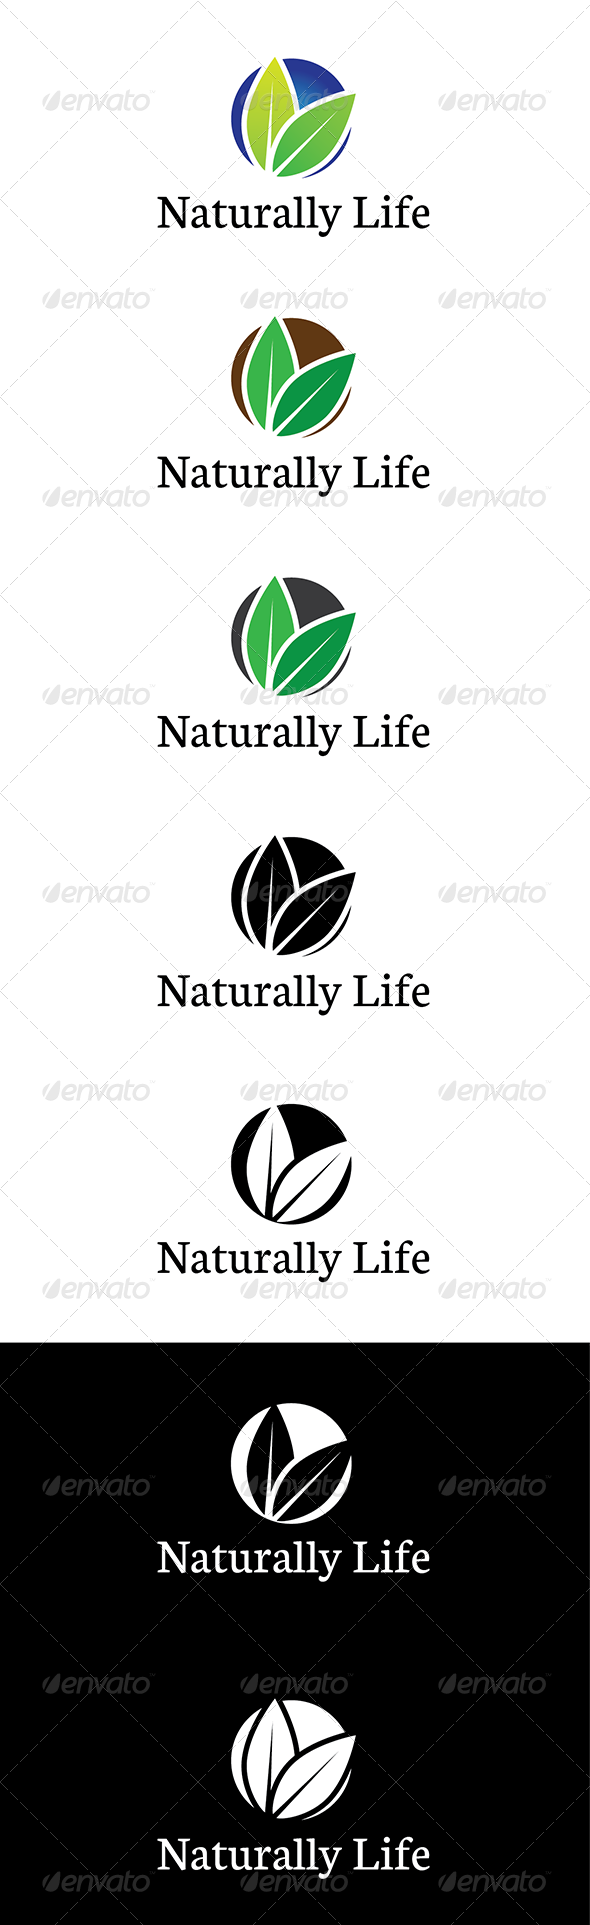 Naturally Life Logo